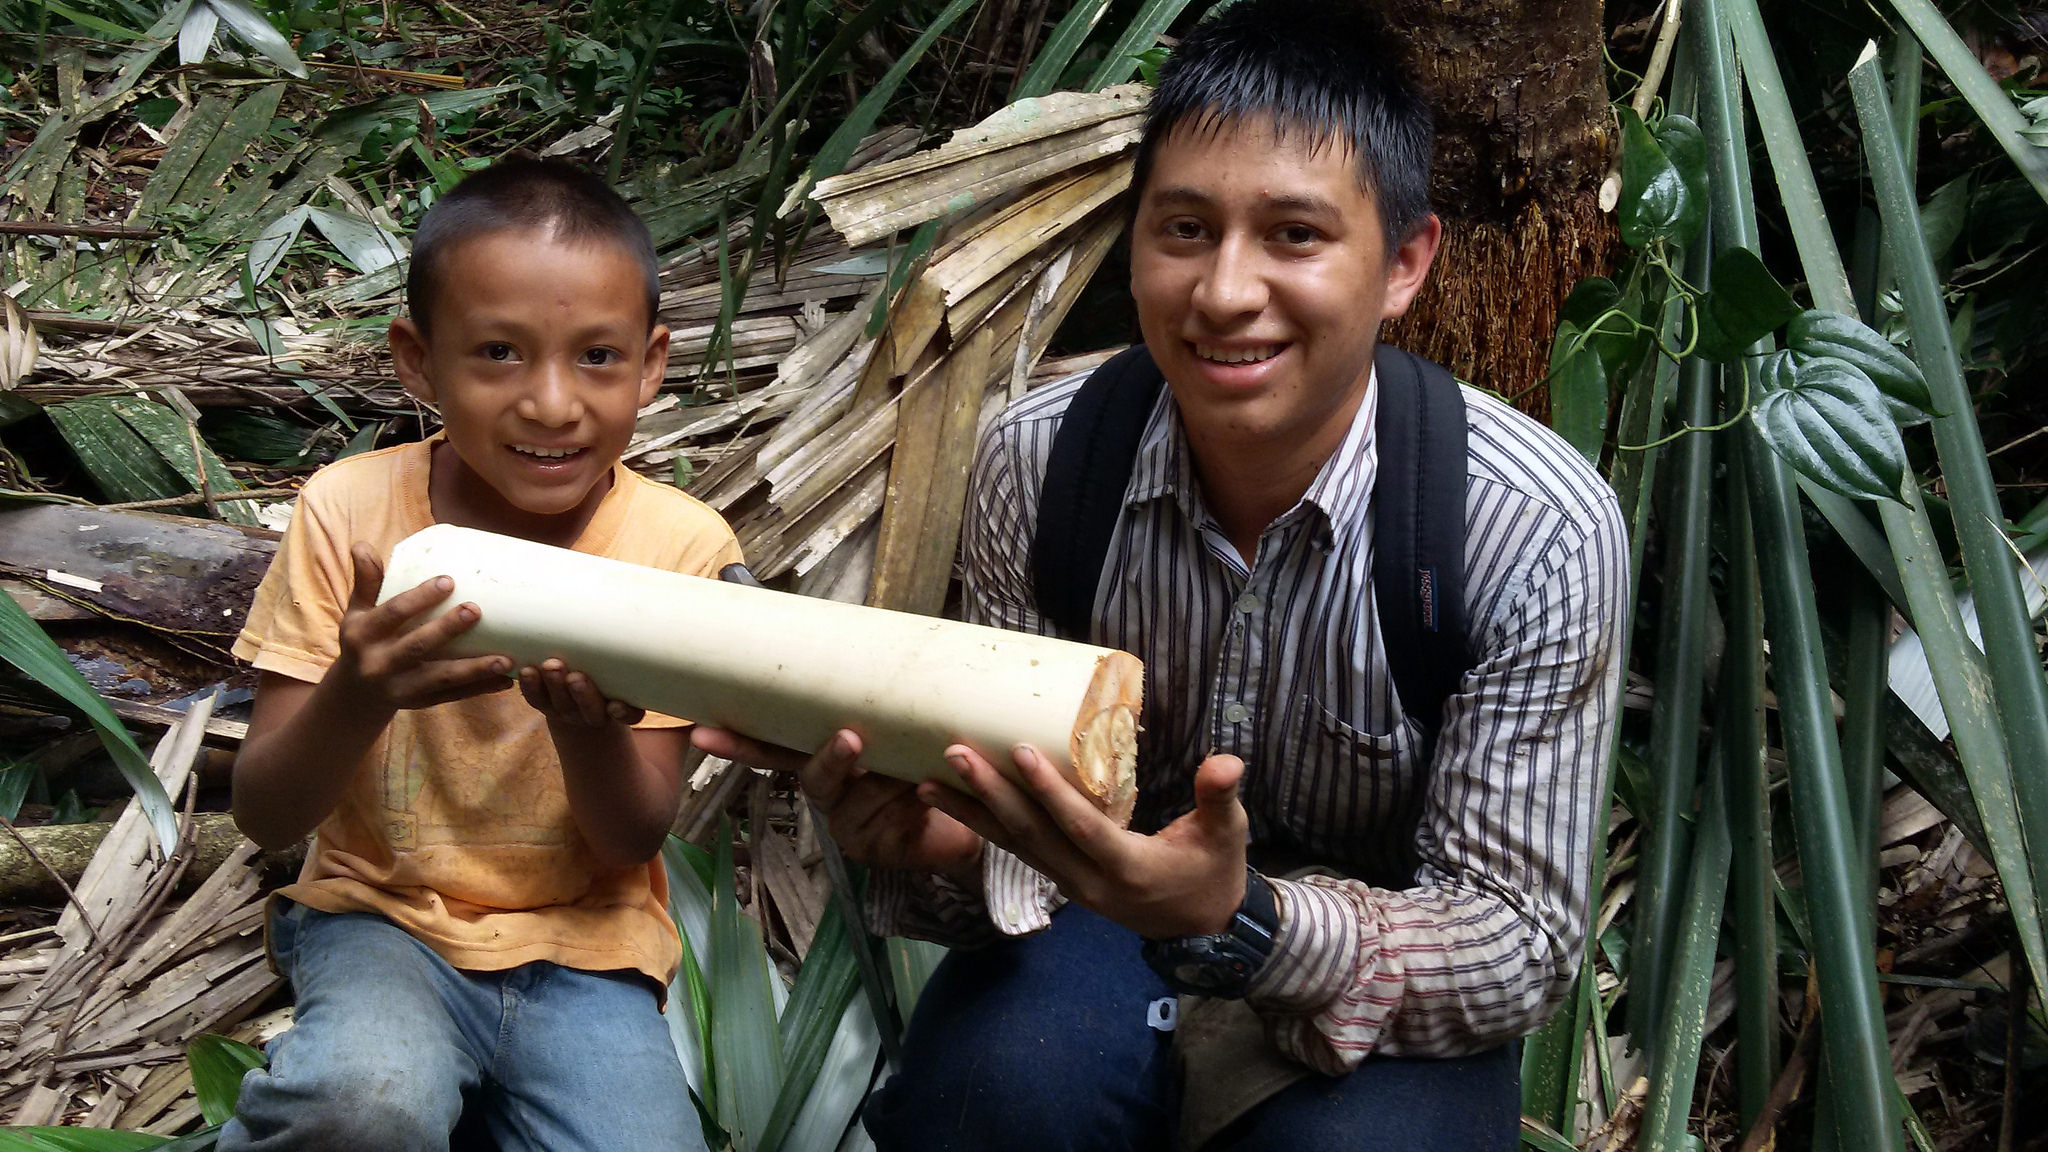 Alexis and Frehilio (Alfonso's son) holding a giant palm heart